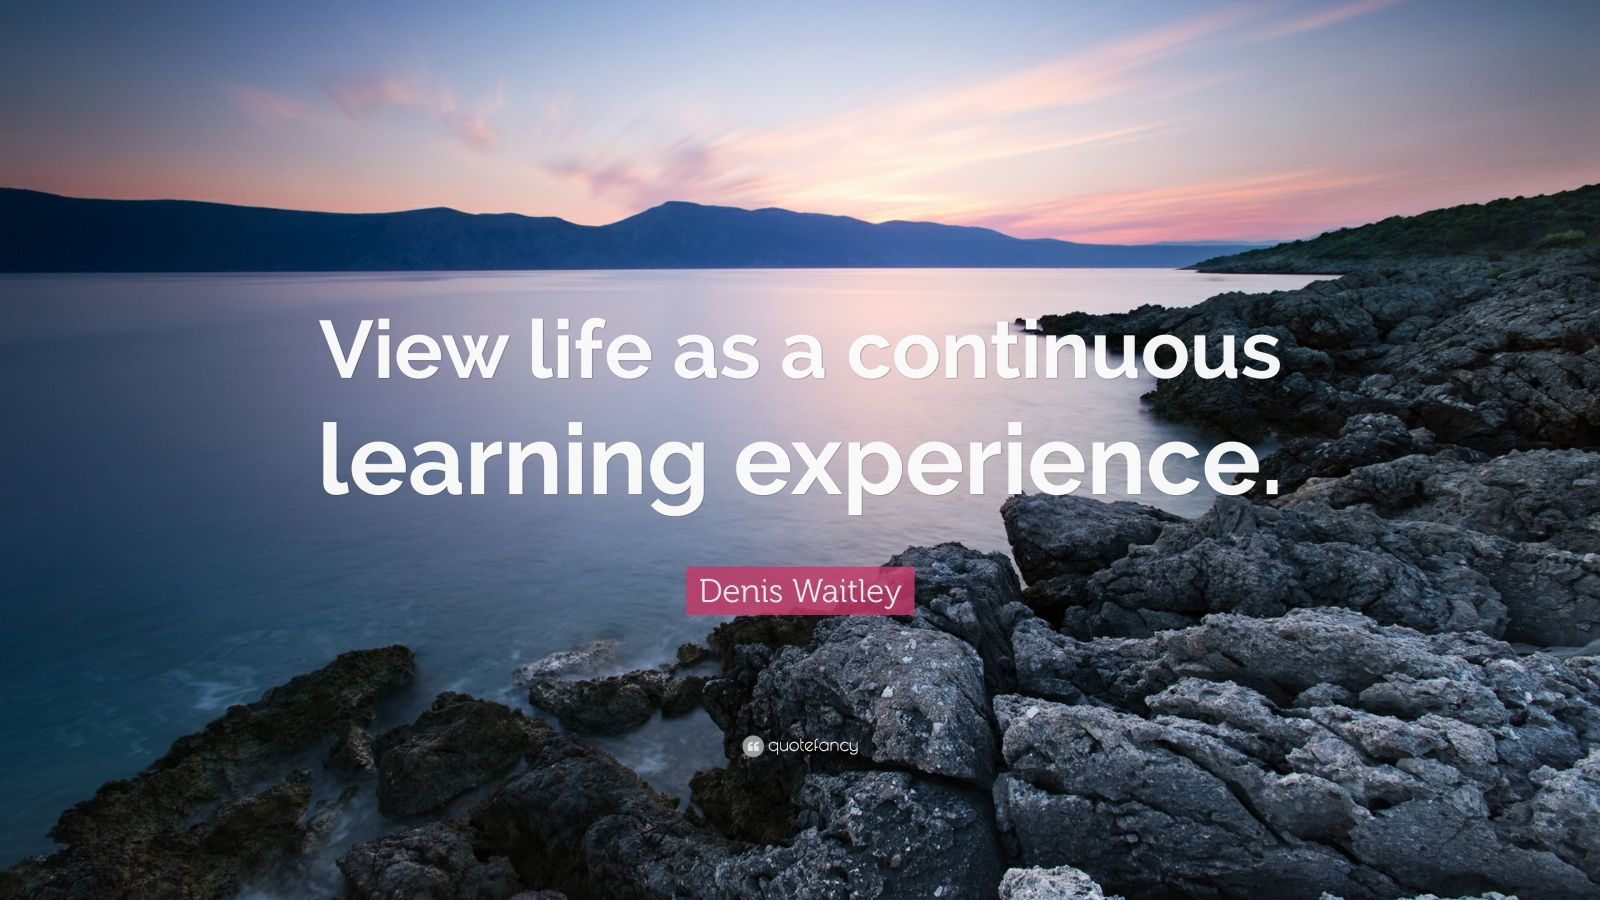 """Denis Waitley Quote: """"View life as a continuous learning experience."""""""